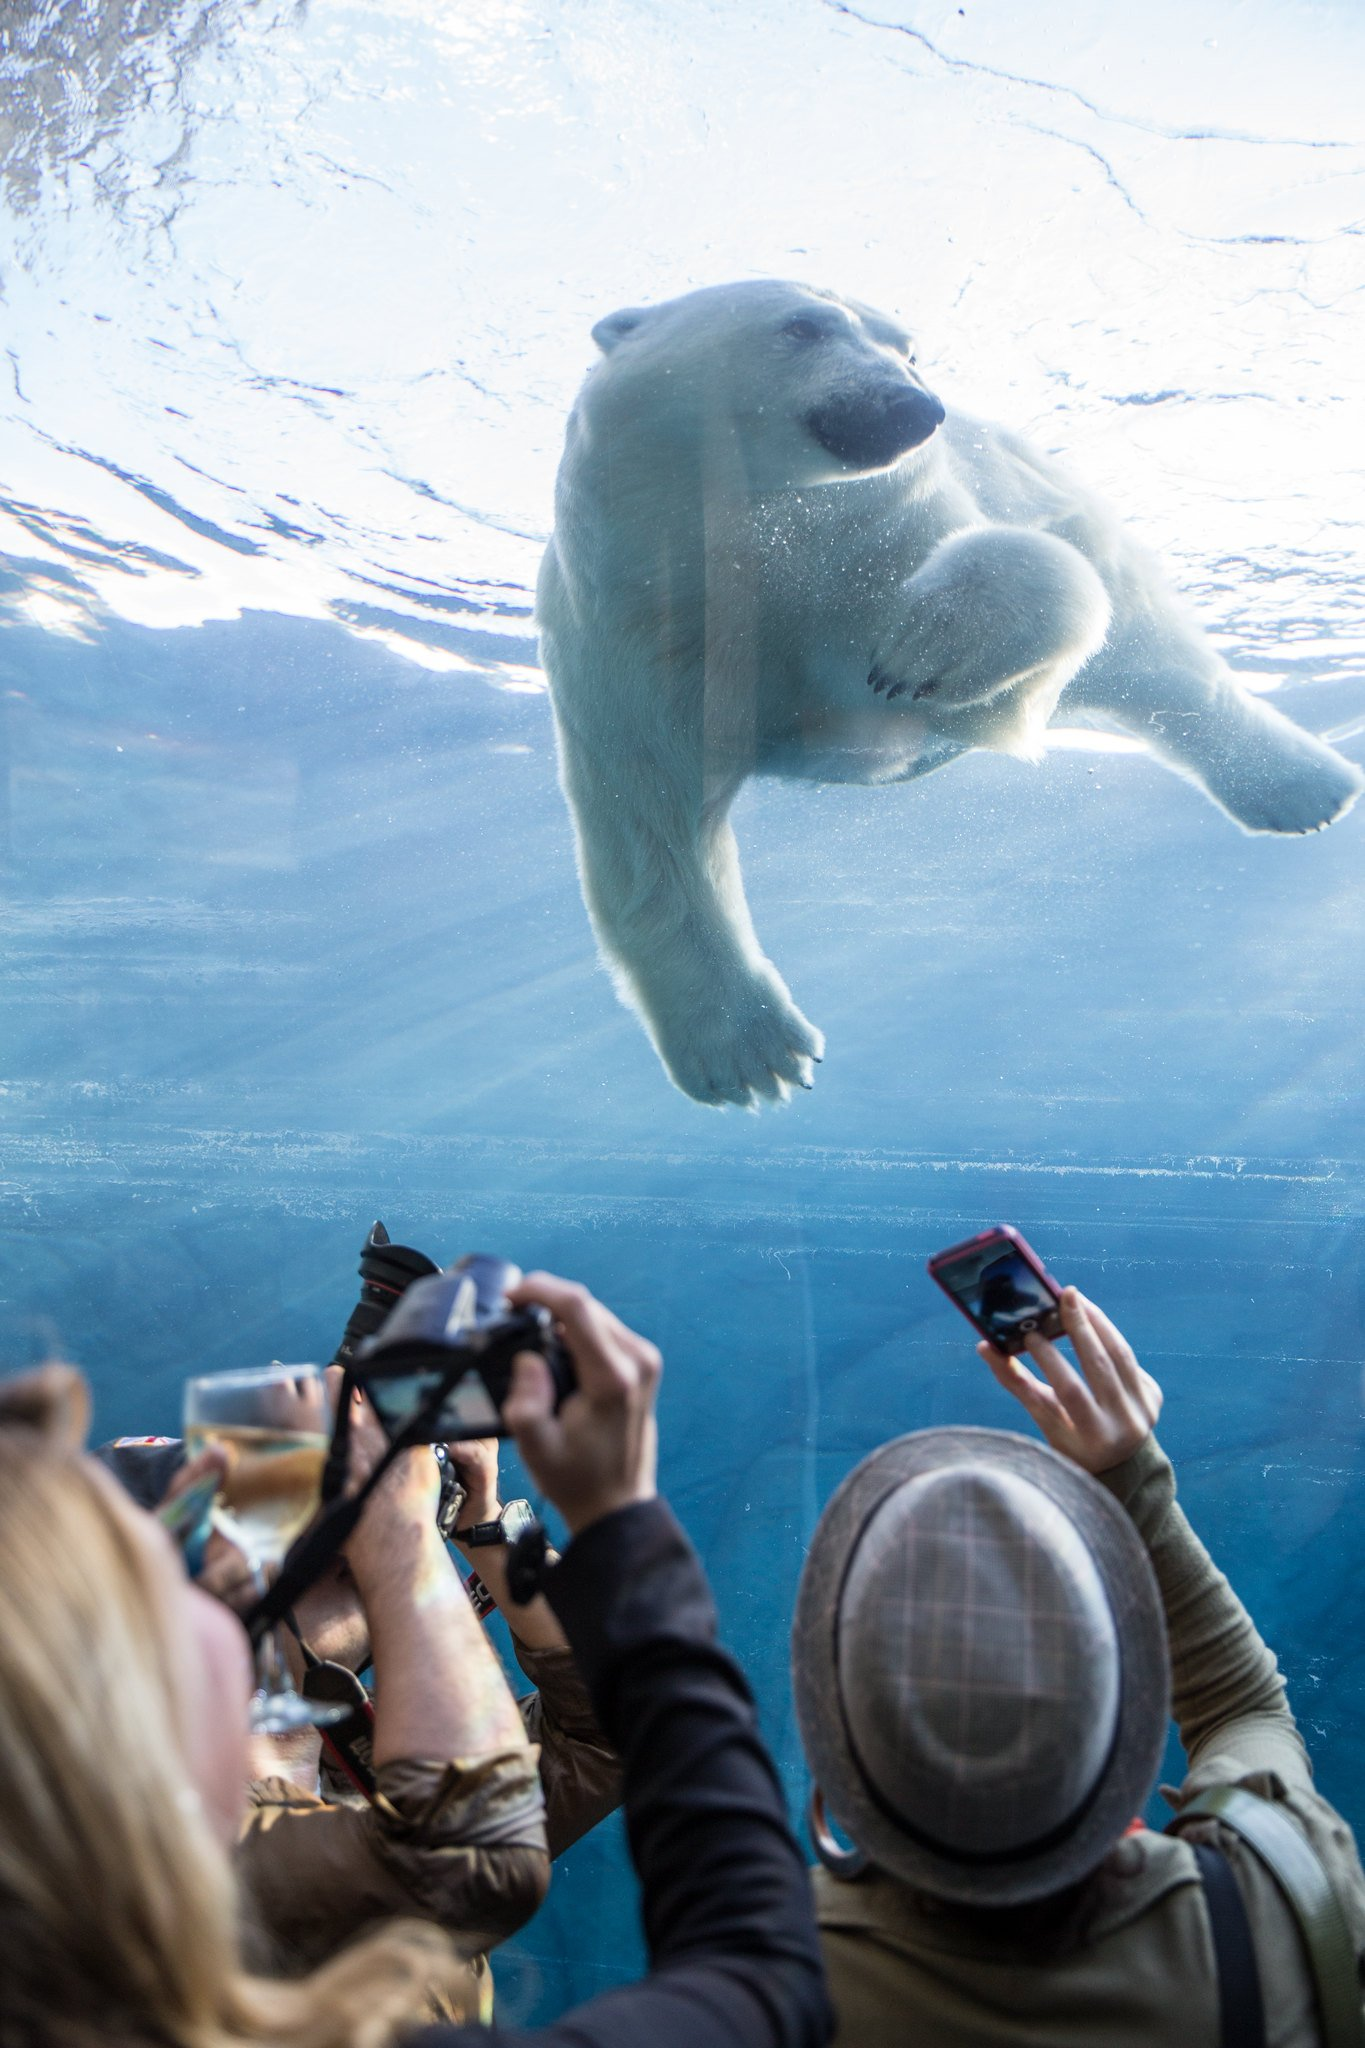 A photo of a polar bear swimming behind glass at the Assiniboine Park Zoo, one of the best things to do in Winnipeg